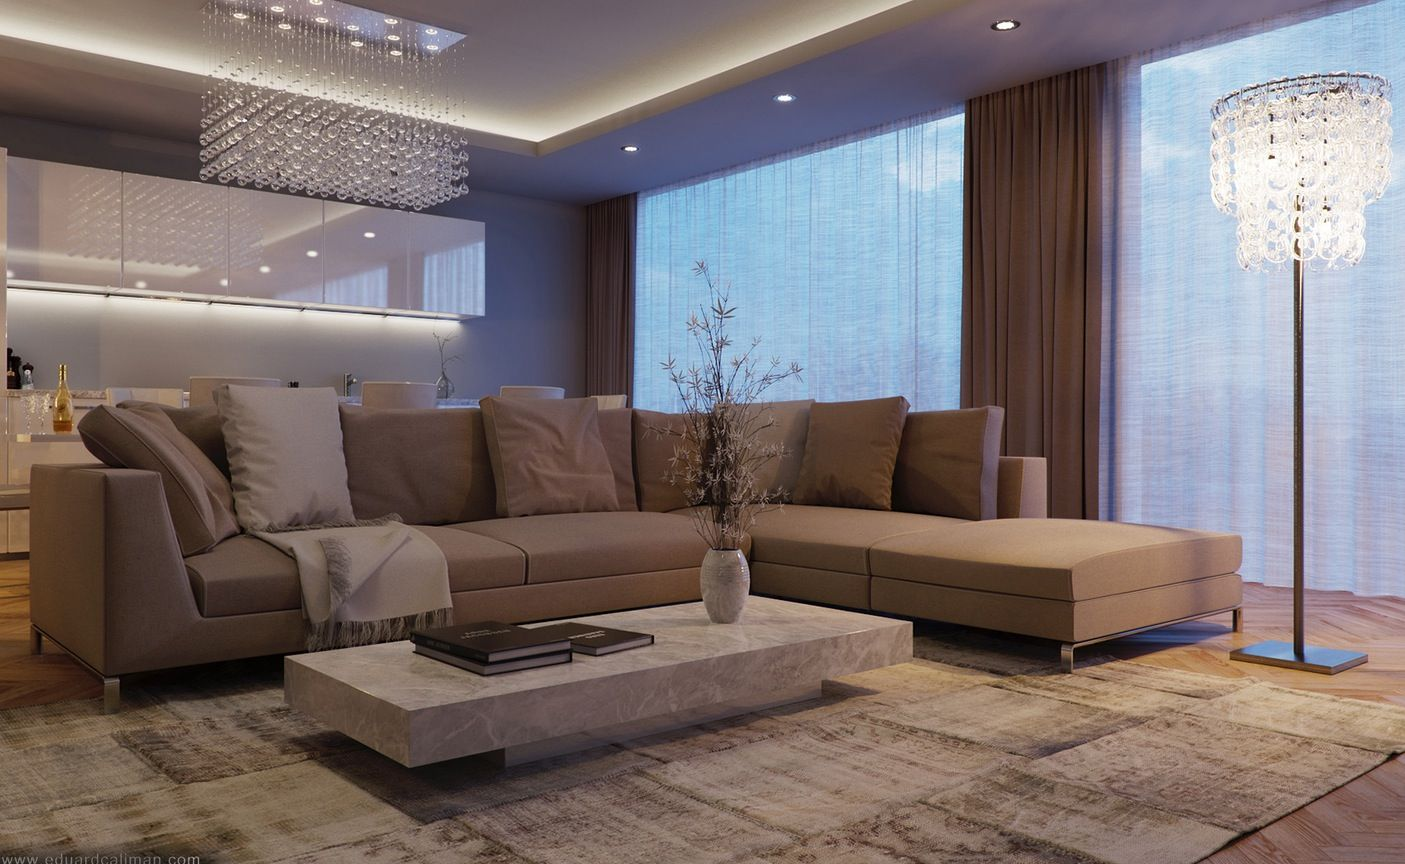 Pin By Palatial Stone And Tile On Interery Taupe Living Room Best Living Room Design Taupe Sofa Living Room #taupe #couch #living #room #ideas